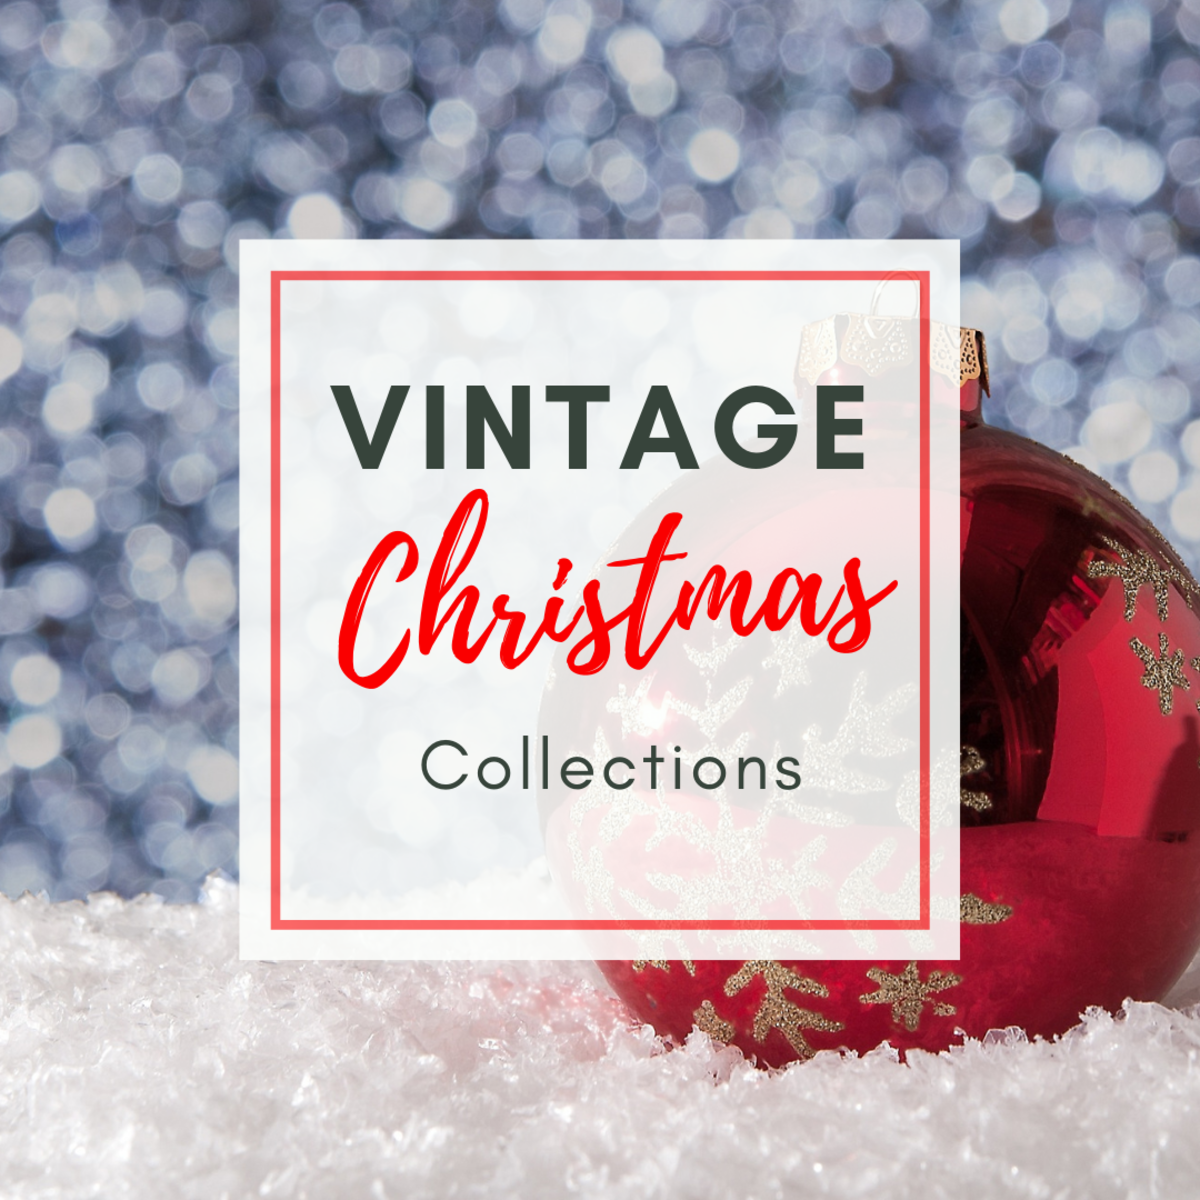 Collecting Vintage Christmas Ornaments and Decor